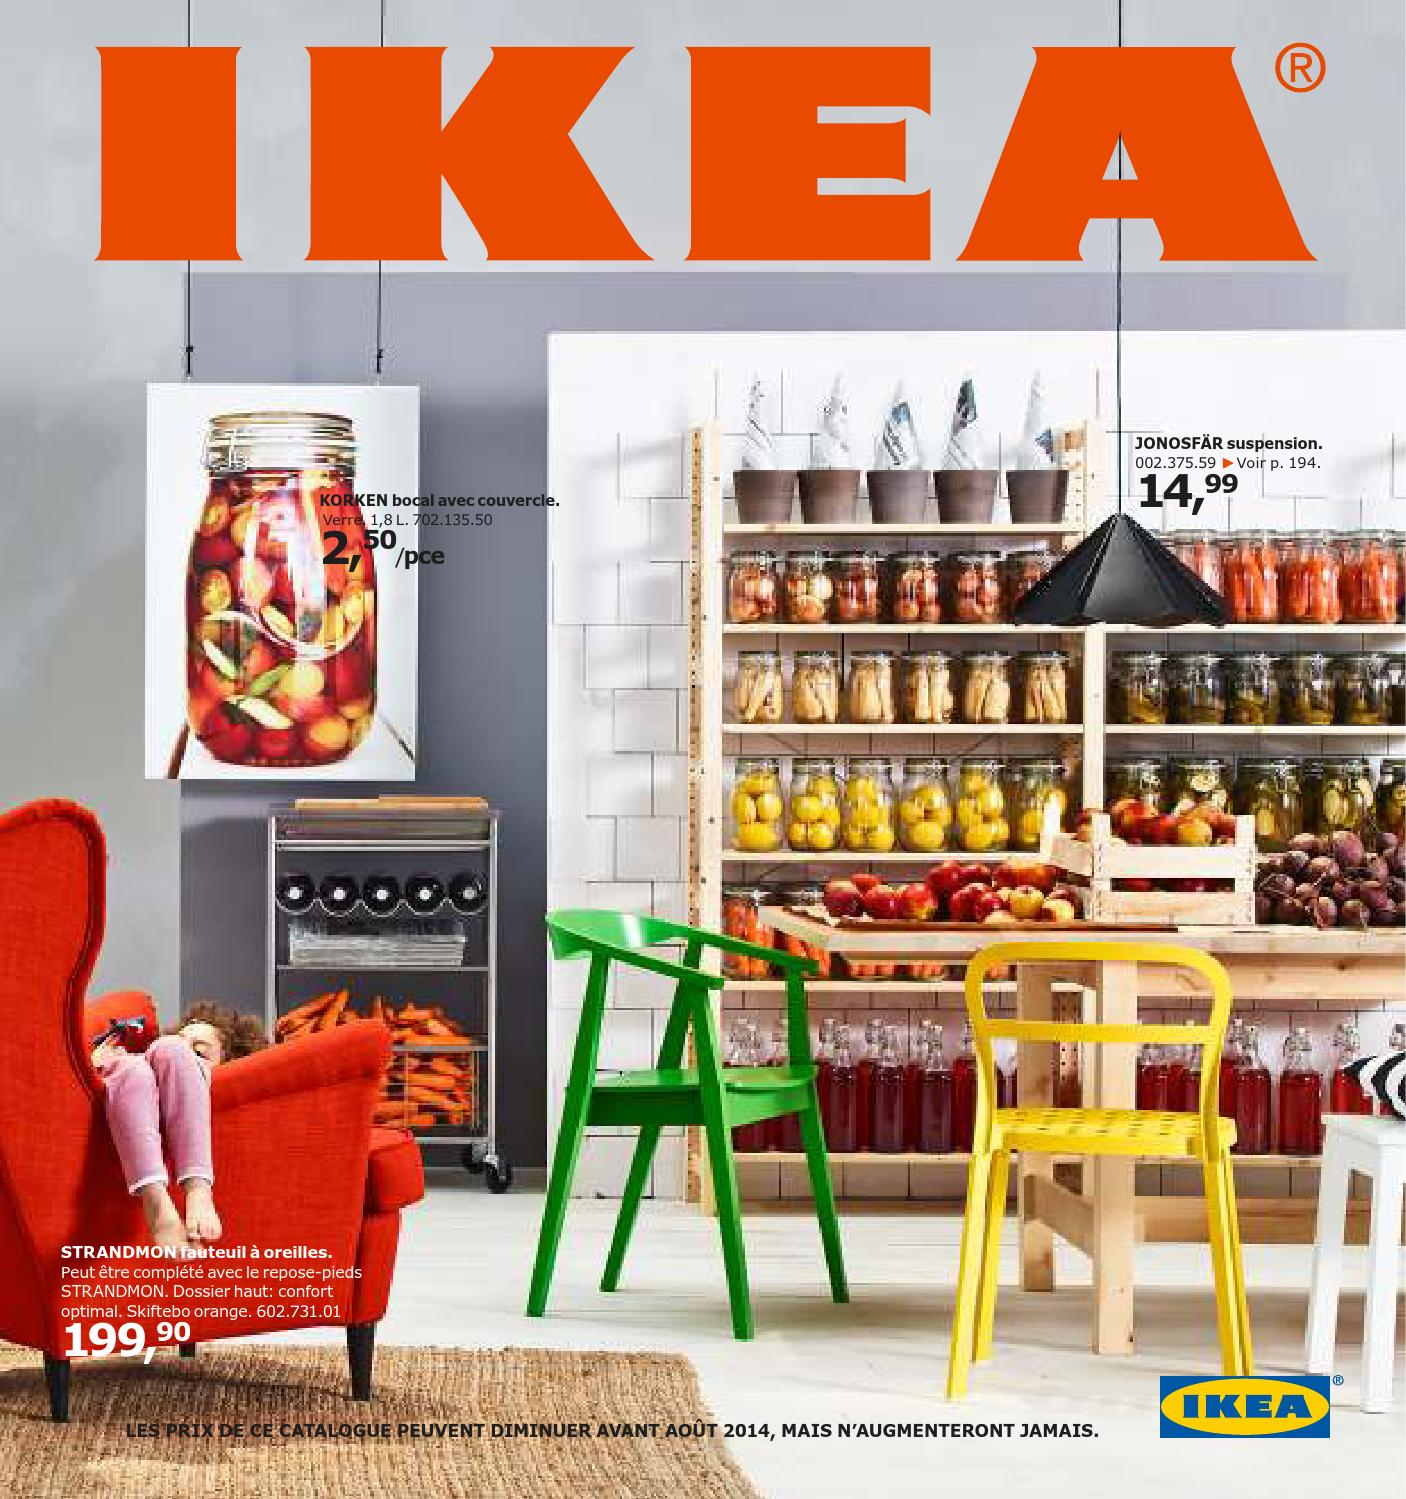 Catalogue issuu complete BVBA by ikea 2014 meubles fr Adclick 6g7fYybv